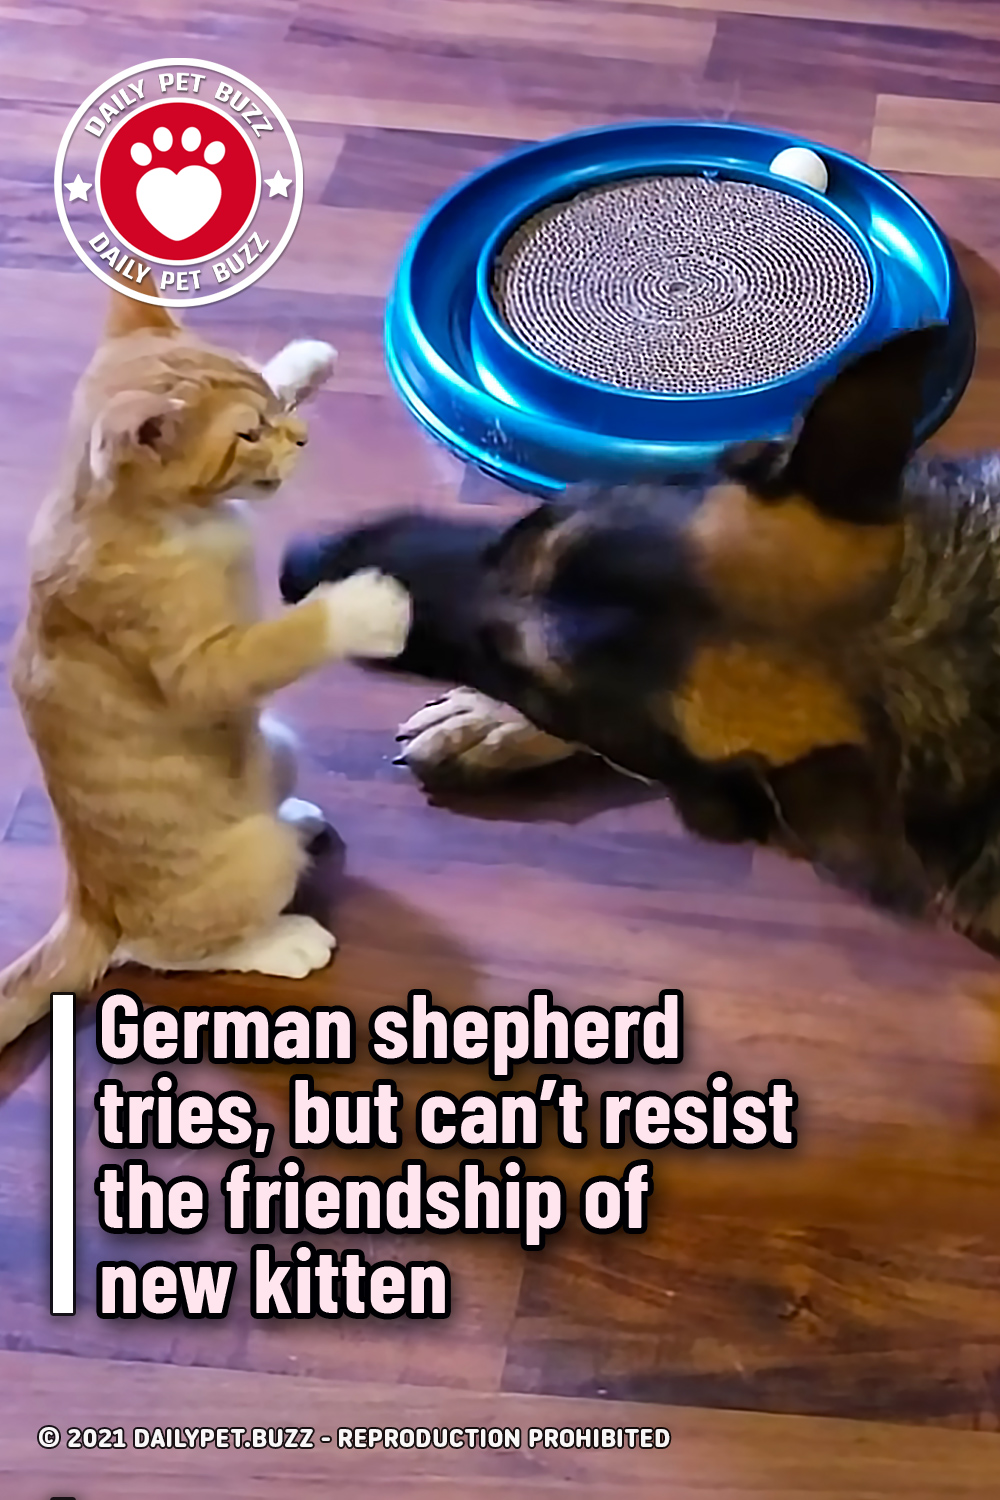 German shepherd tries, but can't resist the friendship of new kitten